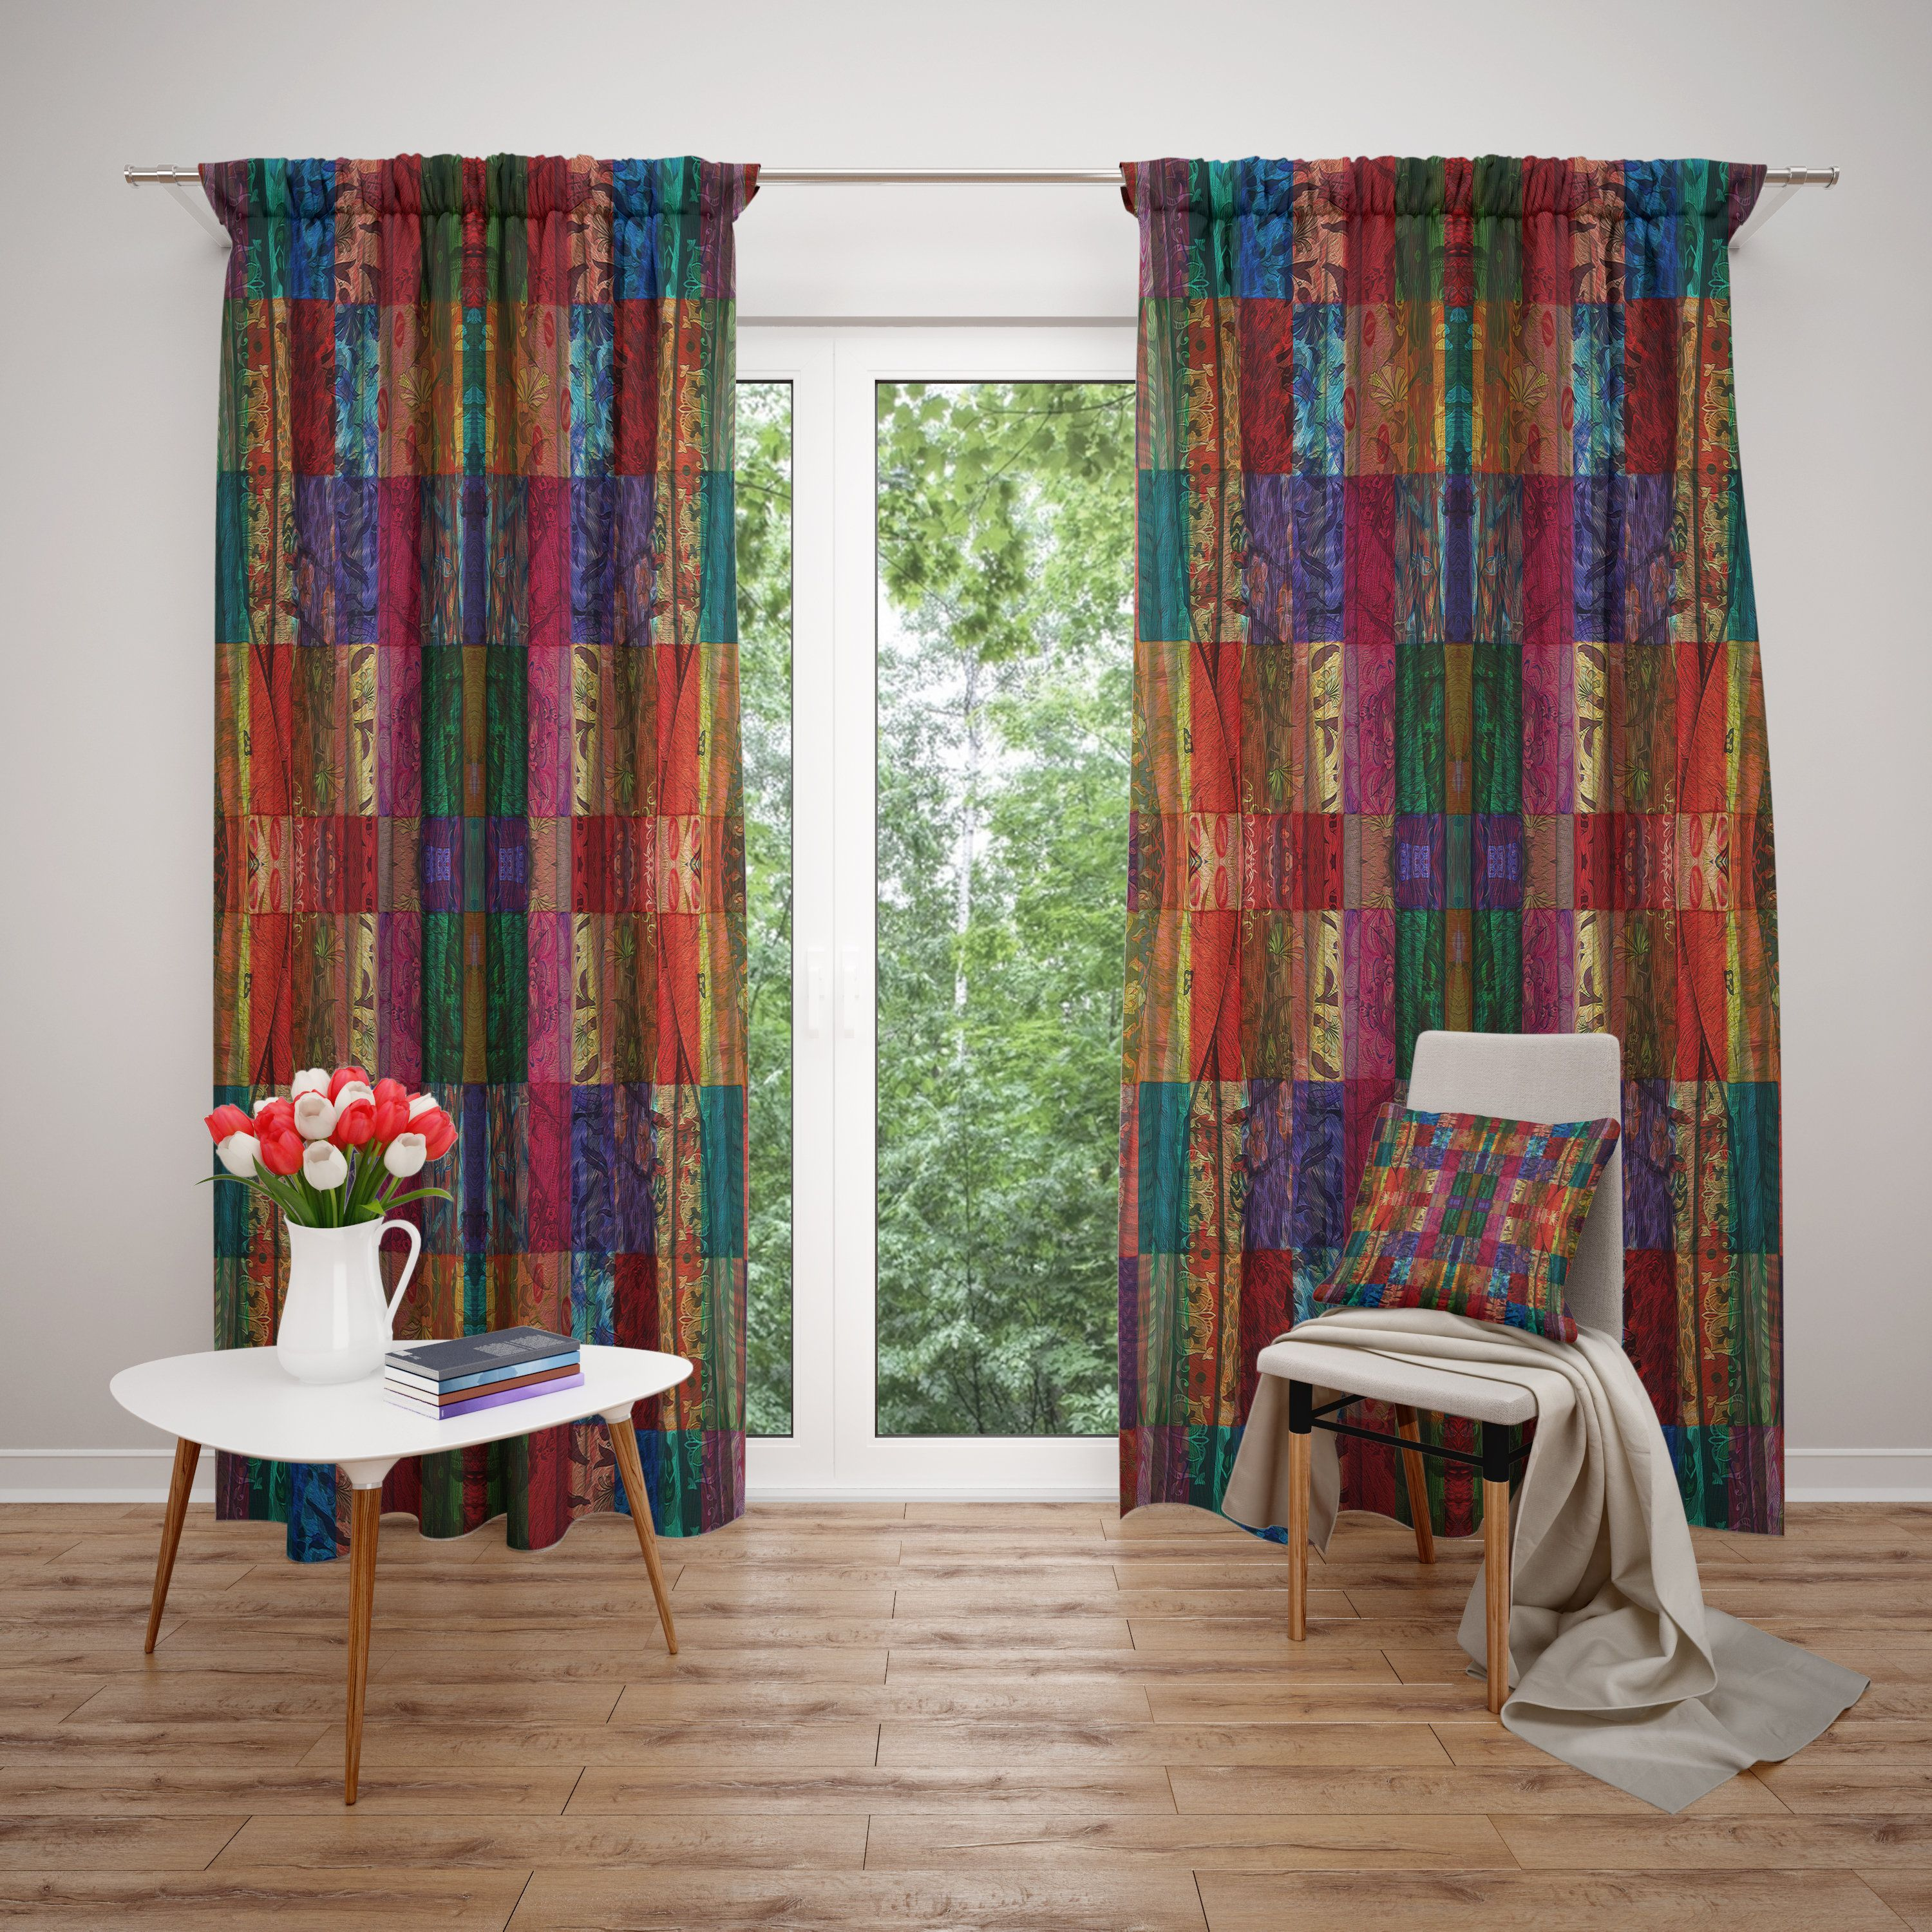 Faux Patchwork Window Curtain Boho Curtain Panels Colorful